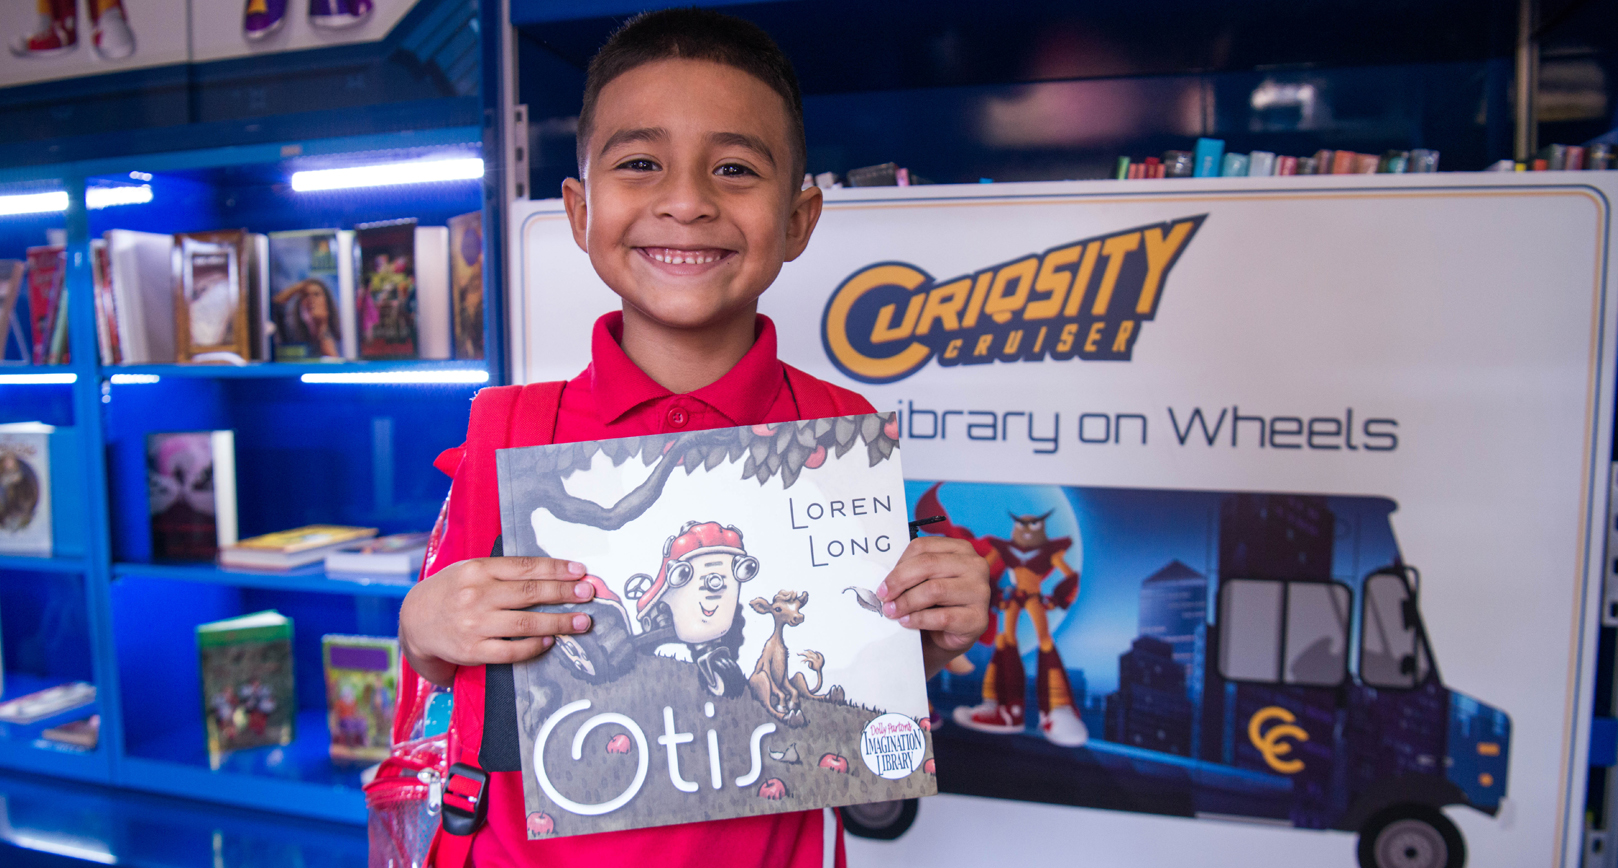 Child receives a free book from the Curiosity Cruiser